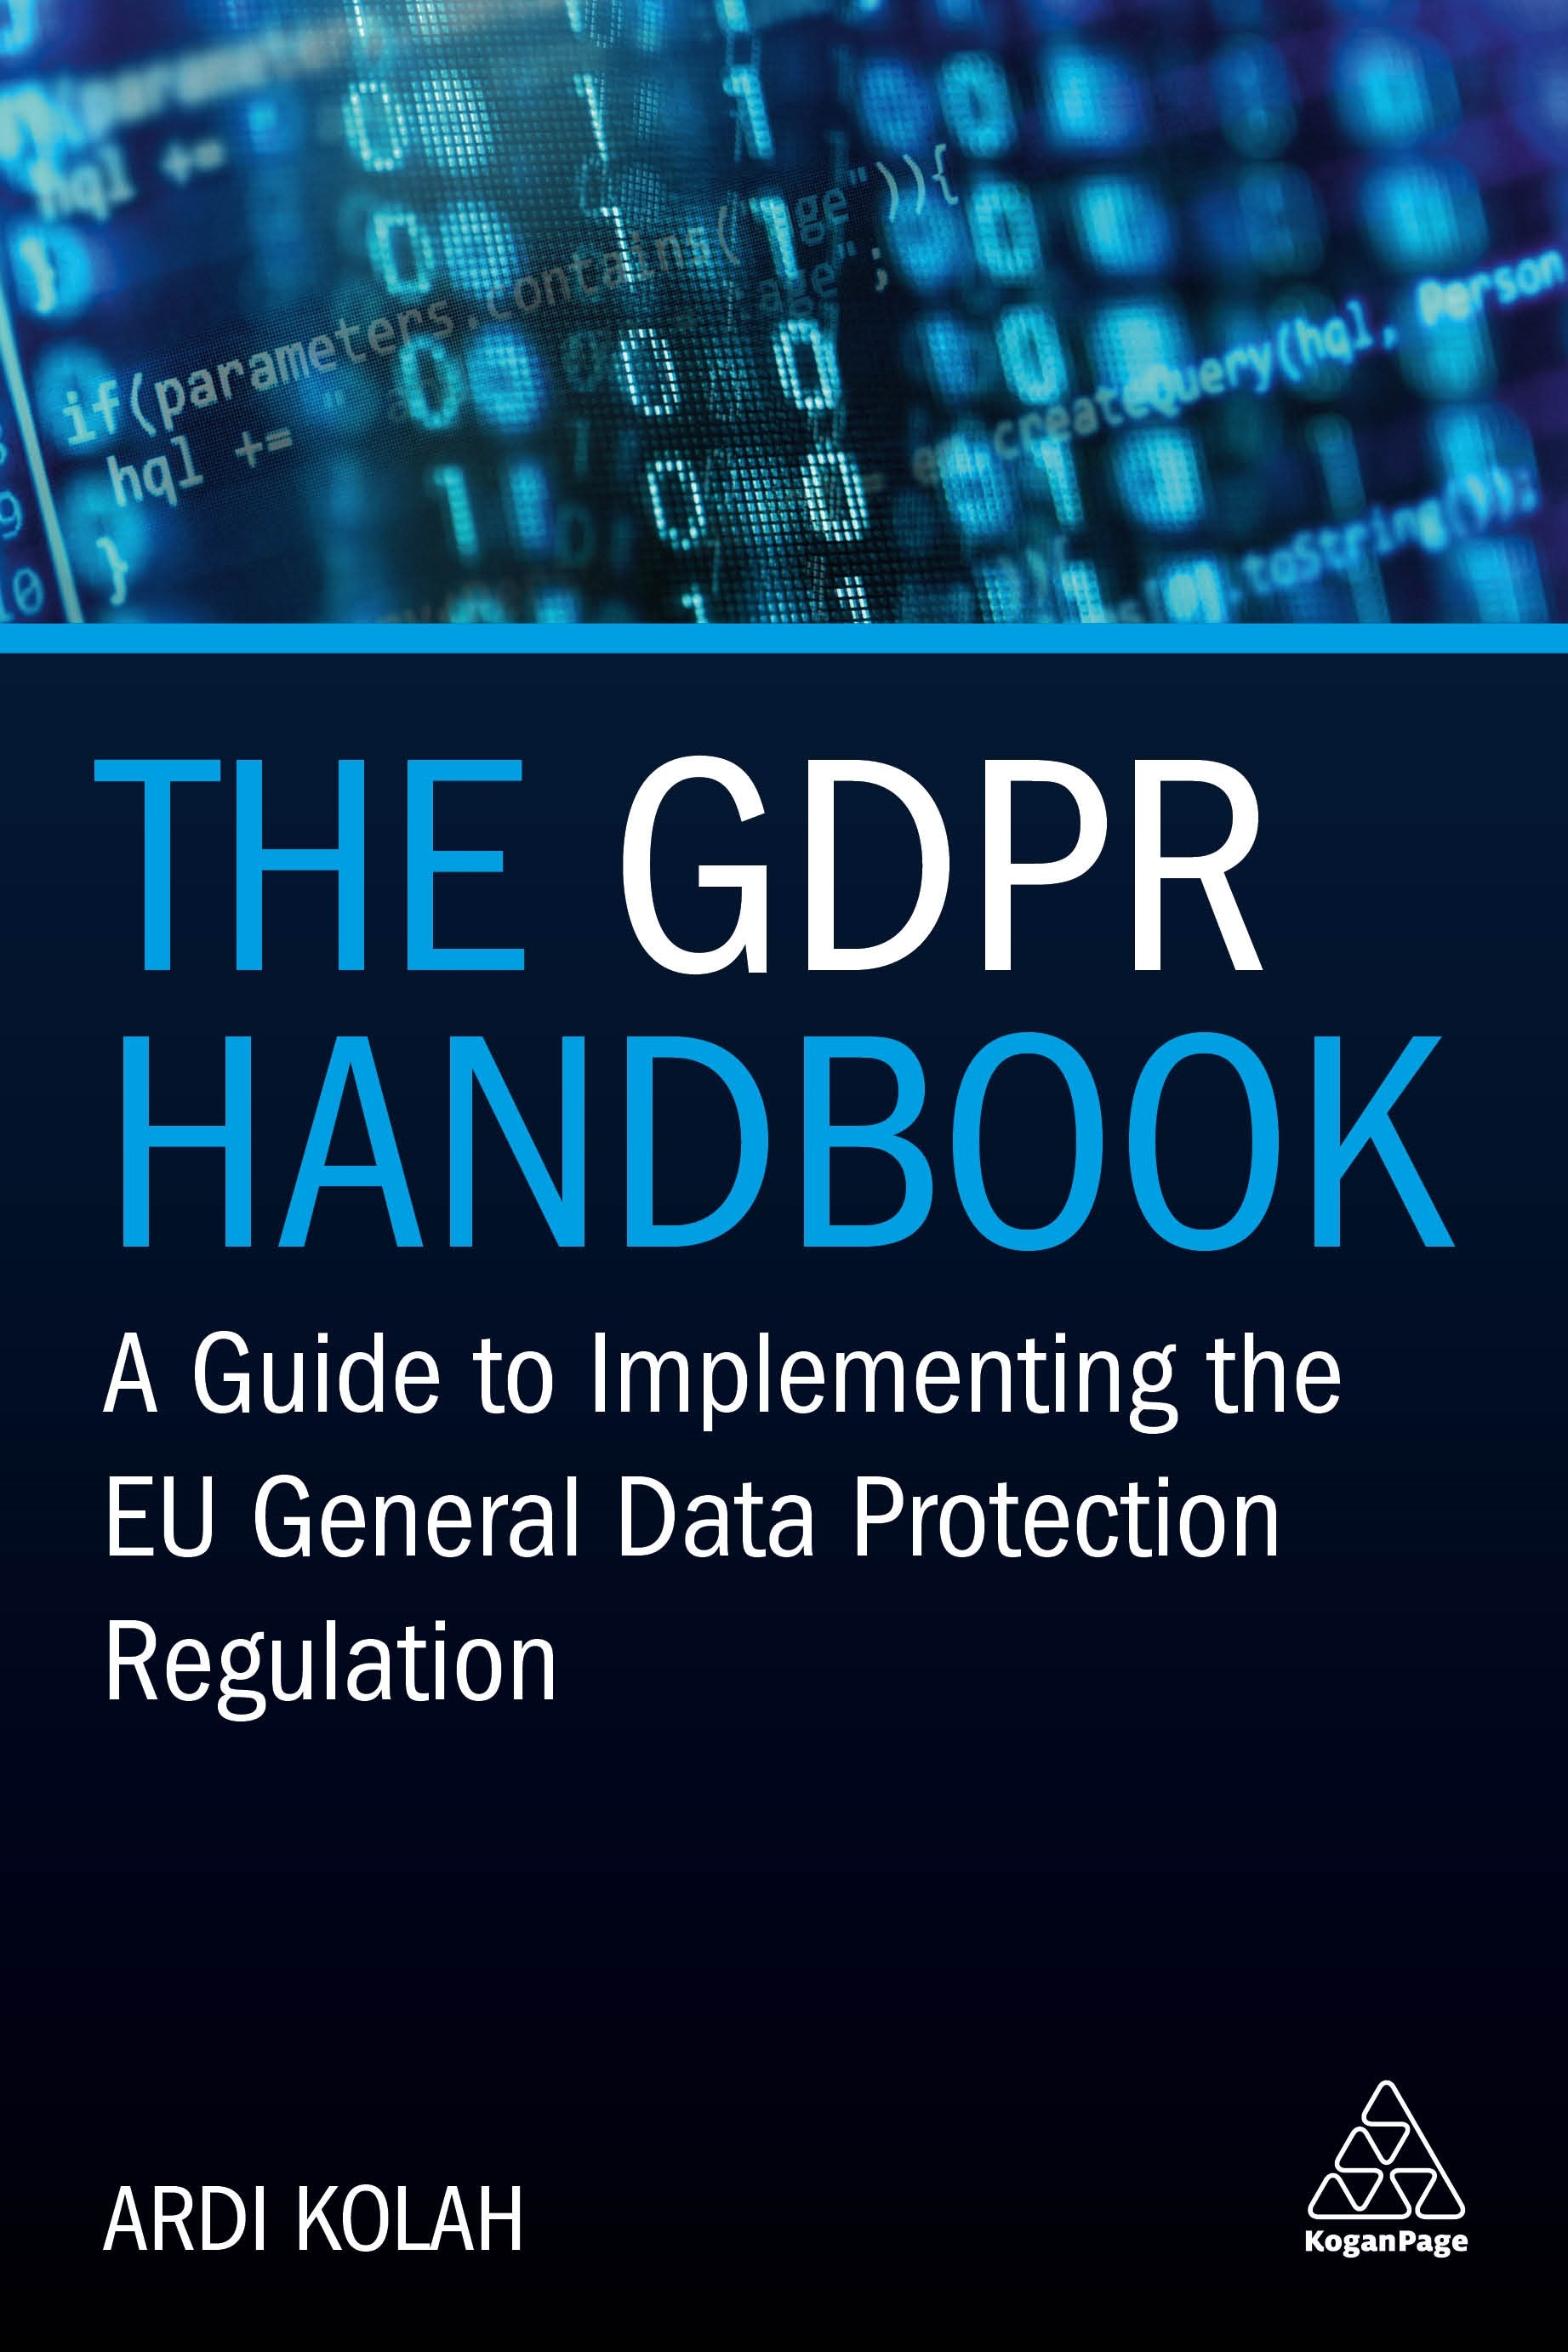 The GDPR Handbook | Kolah, 2018 | eBook (Cover)